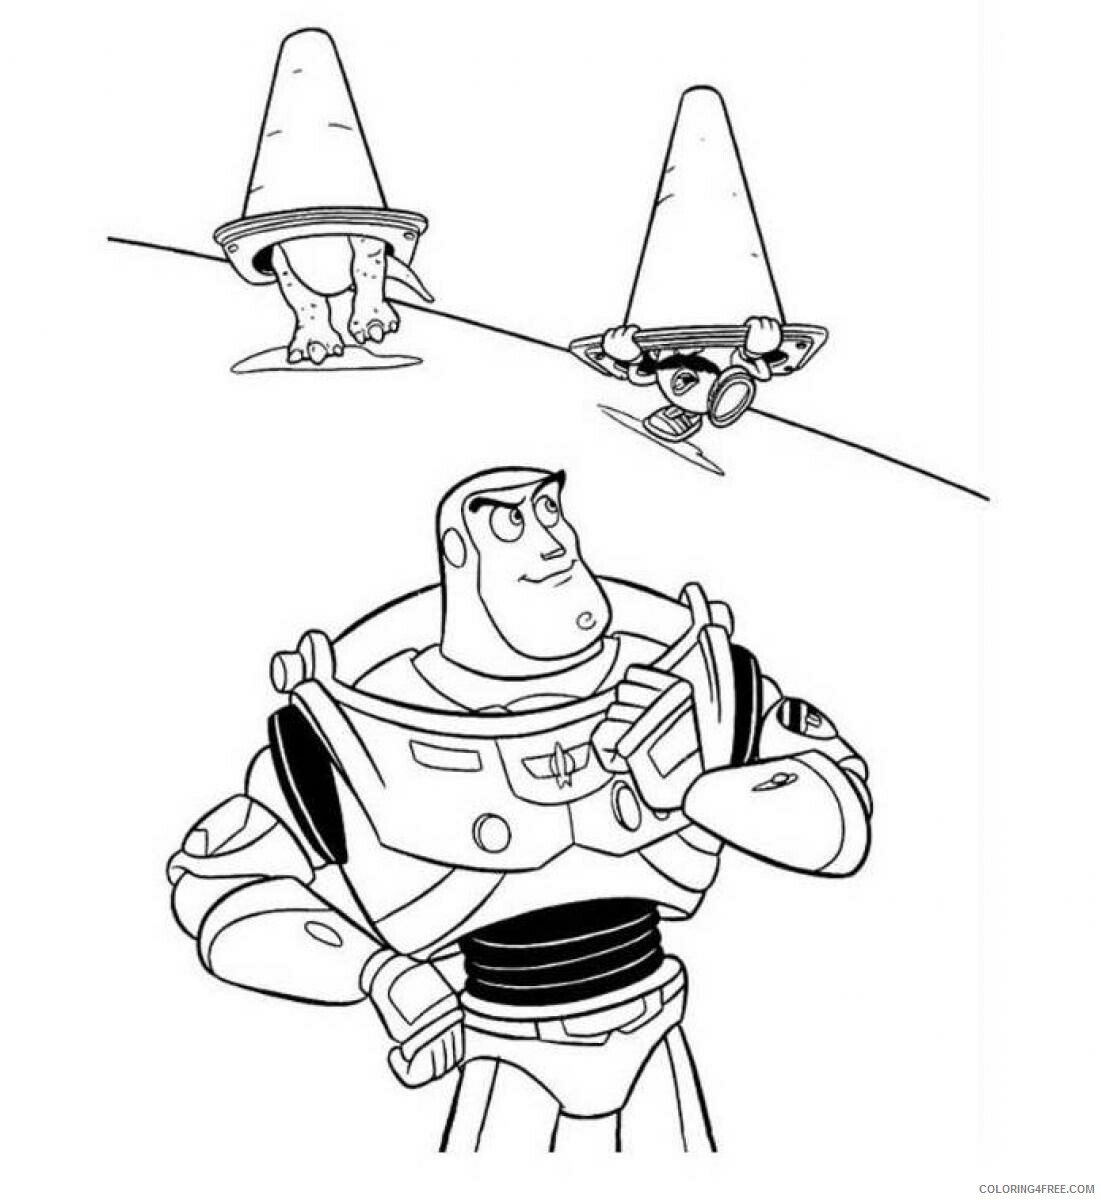 Buzz Lightyear Coloring Pages TV Film Free Buzz Lightyear Printable 2020 01752 Coloring4free